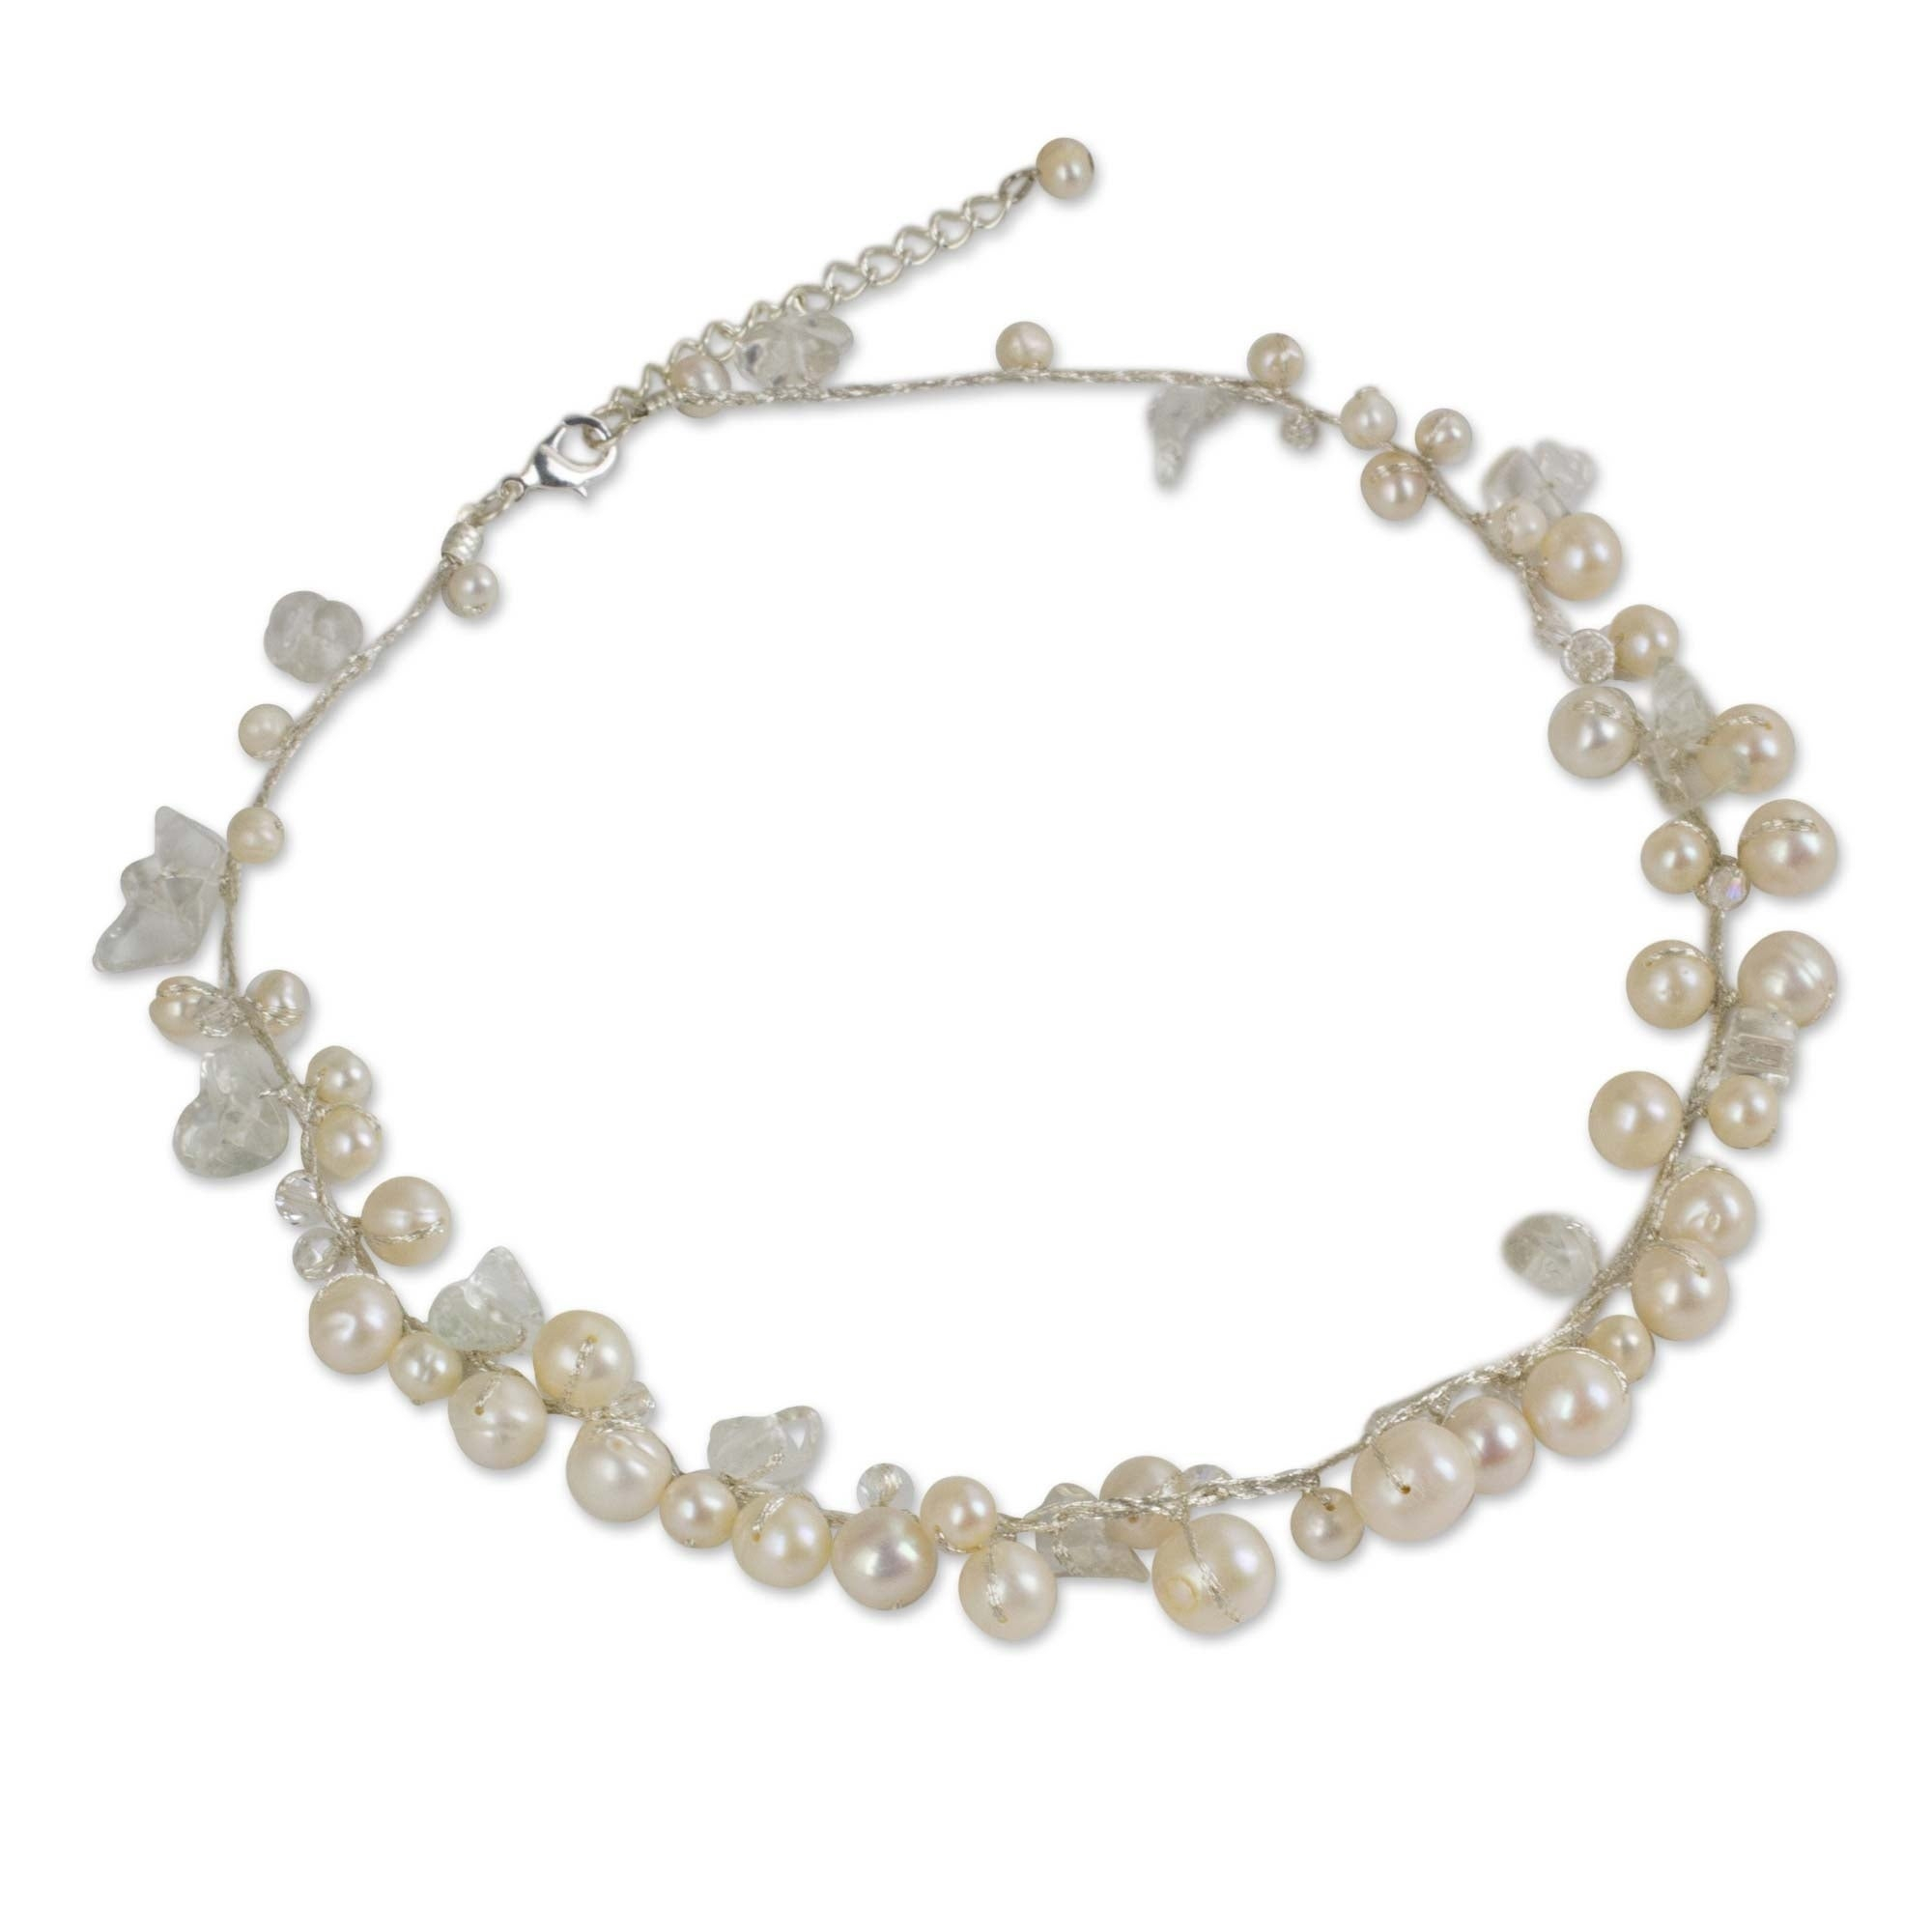 River Of Snow White Freshwater Pearls And Crystal Beads On Silk Thread Fluid Adjustable Length Womens Choker Necklace (thailand) For Current Freshwater Cultured Pearls & Beads Necklaces (View 11 of 25)